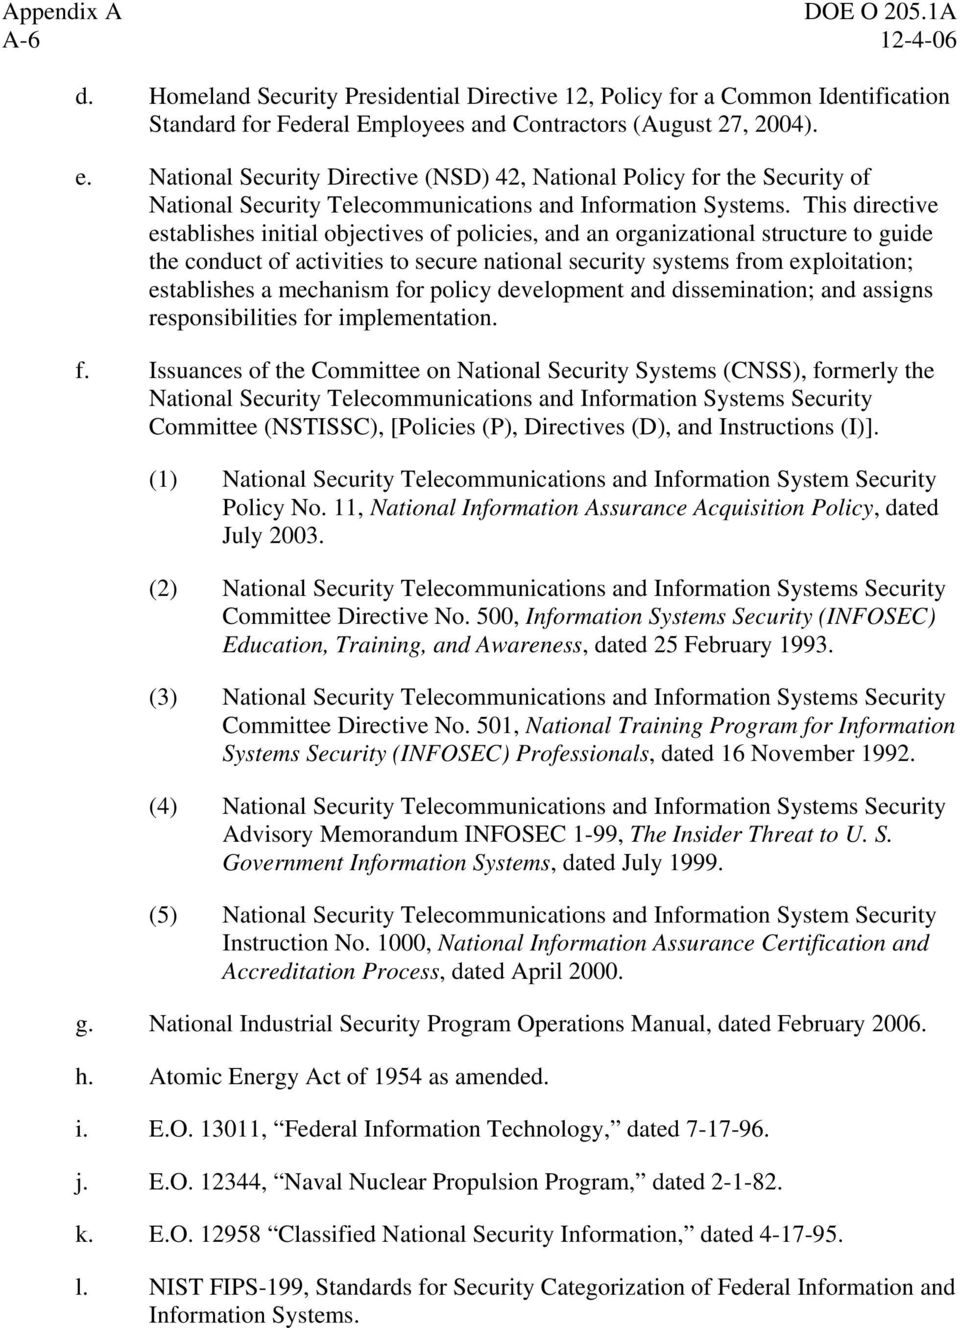 This directive establishes initial objectives of policies, and an organizational structure to guide the conduct of activities to secure national security systems from exploitation; establishes a